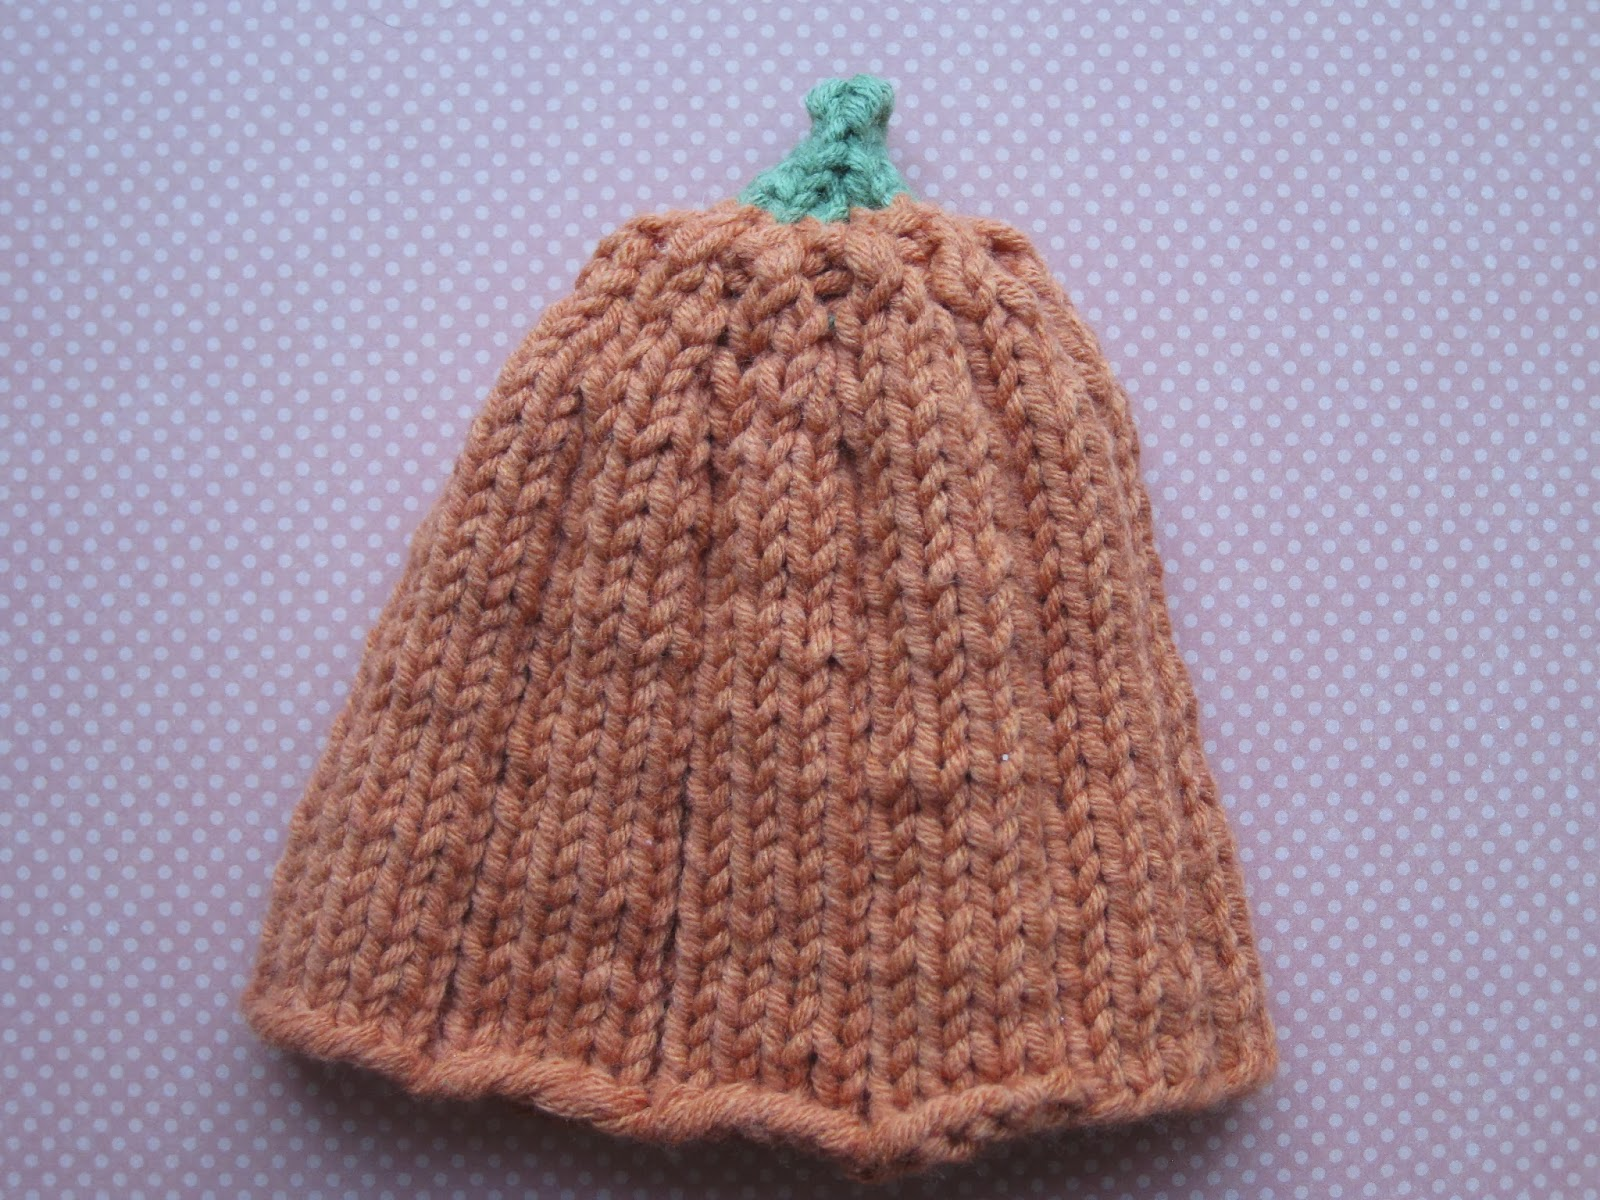 Patterns For Knitted Baby Hats : Oma Socks: Newborn Pumpkin Hat Knitting Pattern